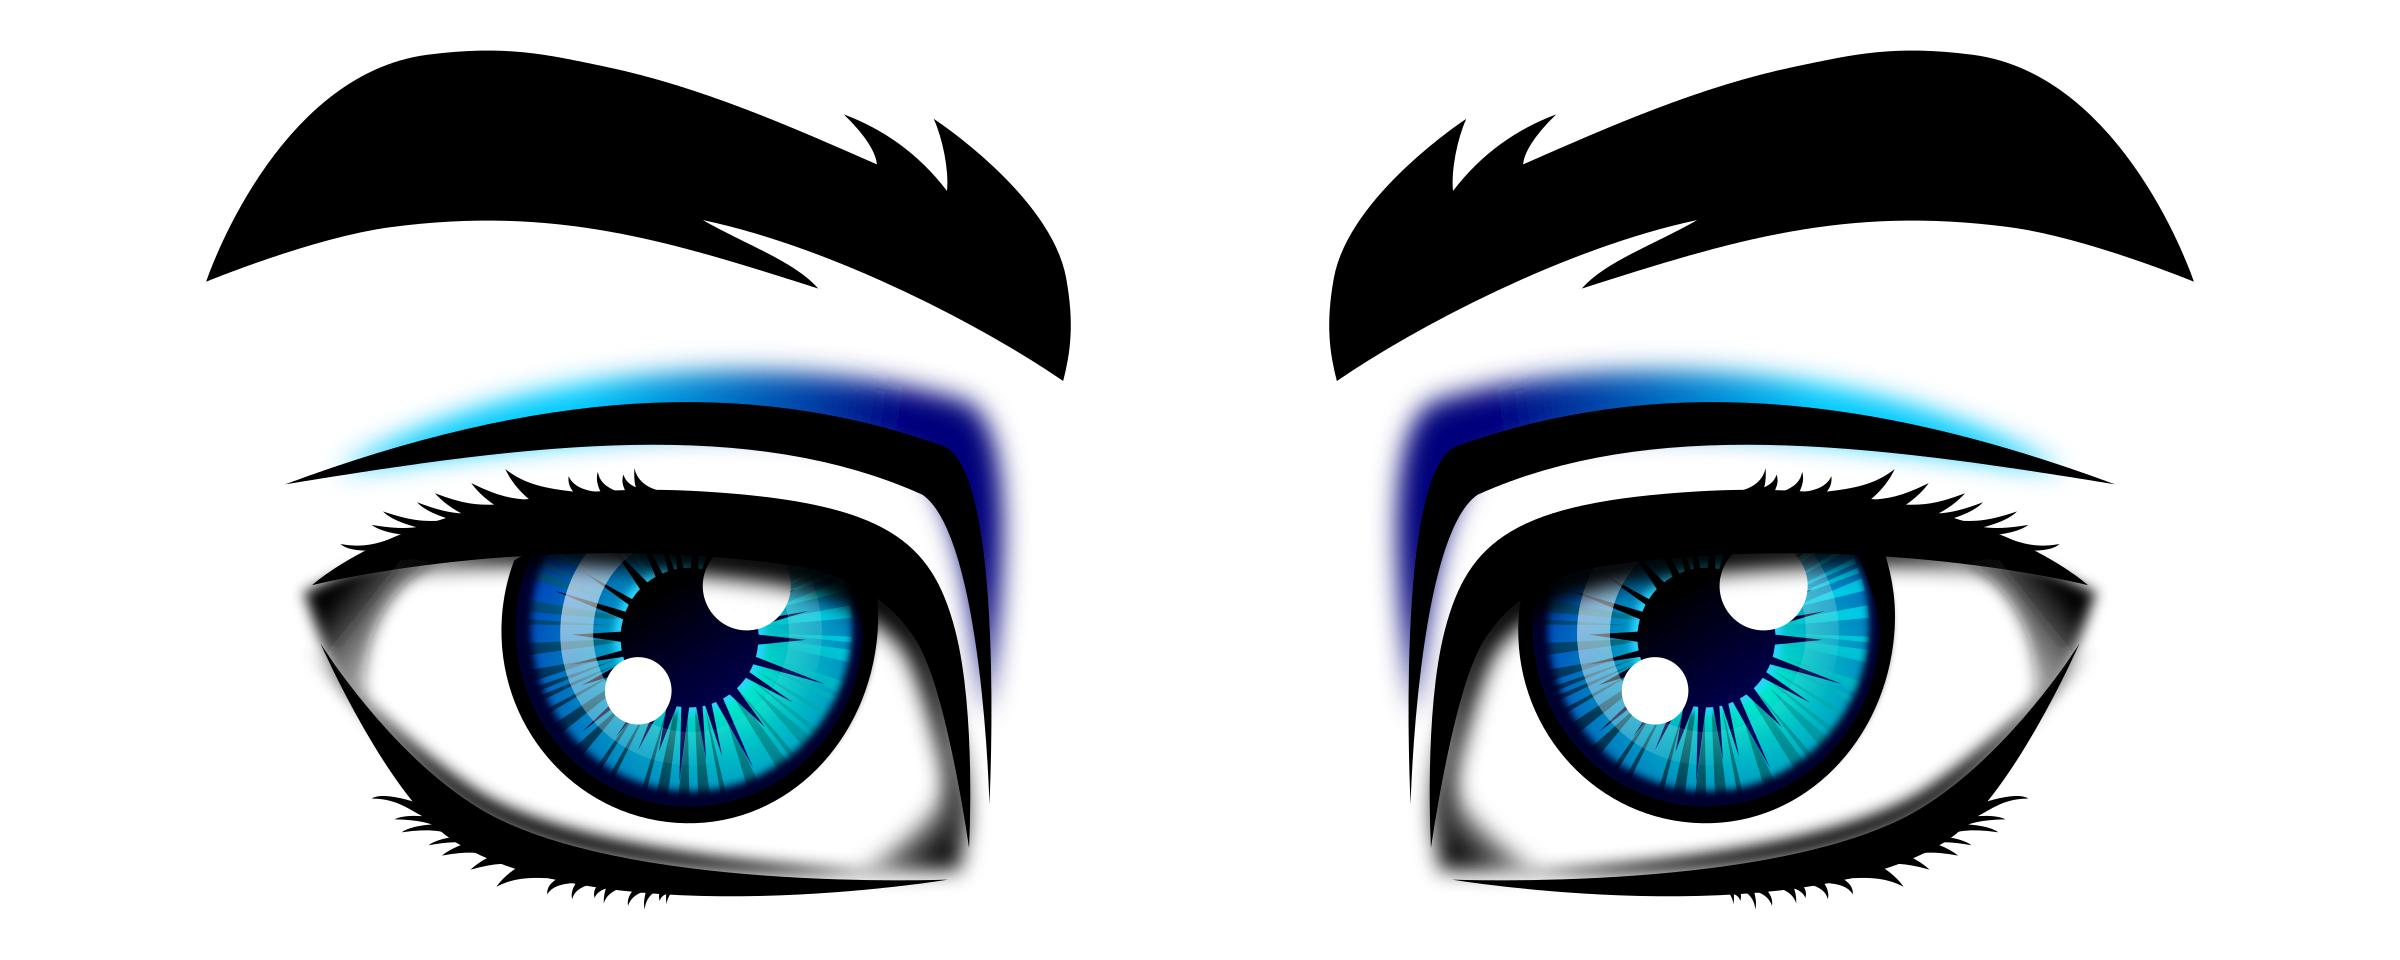 Eyeballs clipart male eye. Eyes big image png